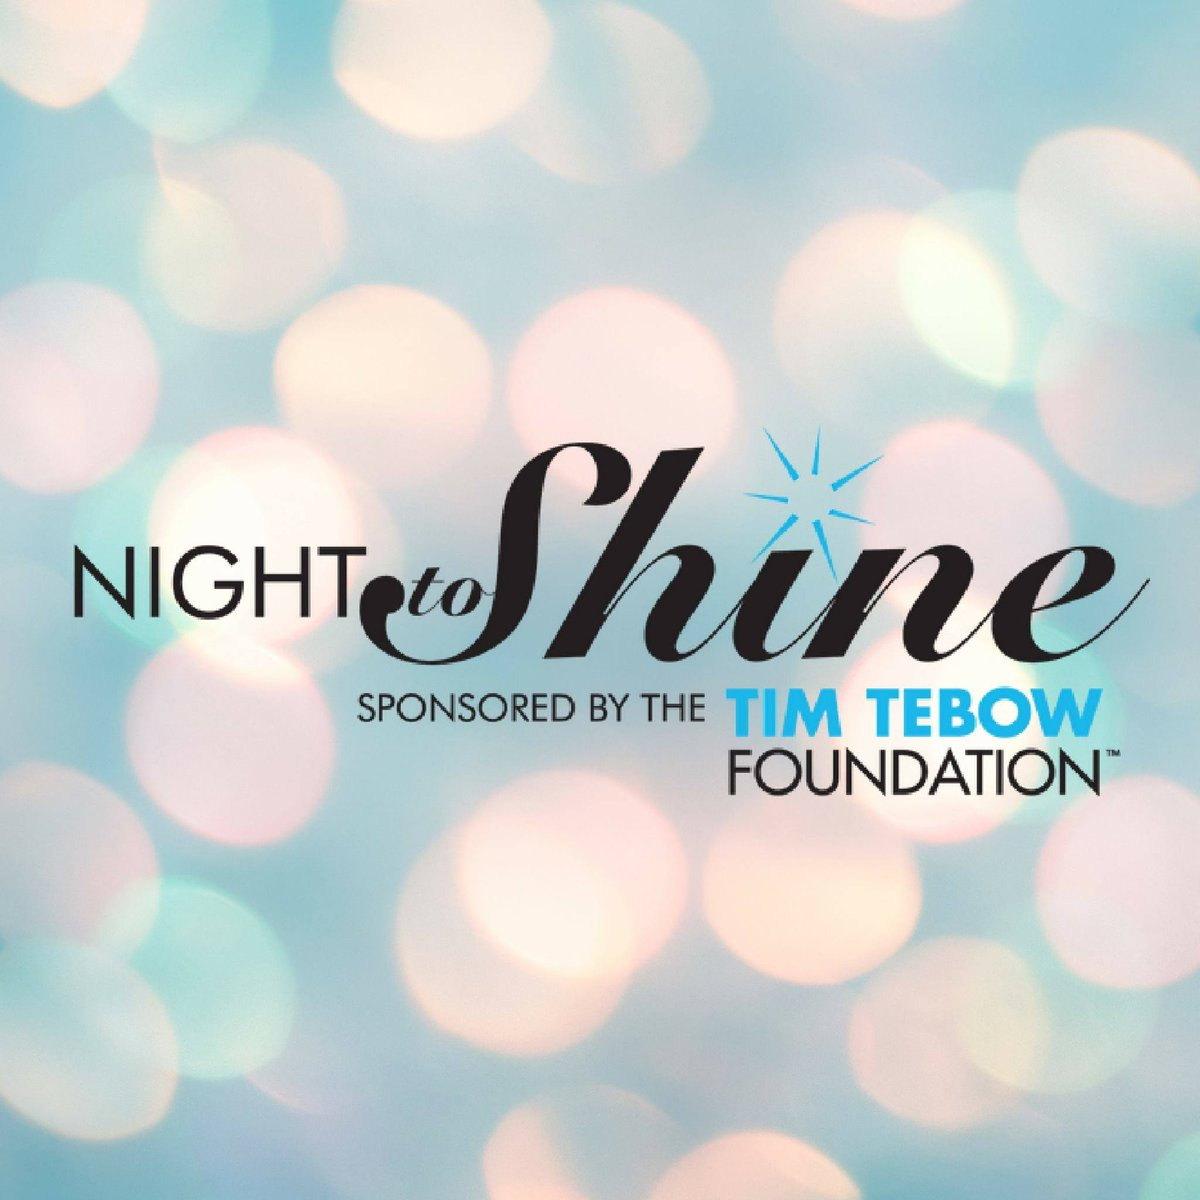 We are excited to host Night to Shine on February 8. This special prom needs your help! We are collecting formal wear for men and women that will be given out on January 5. Donations can be brought to the church. Contact ntsbloomington@gmail.com for more info https://t.co/0K9gfSdB7X